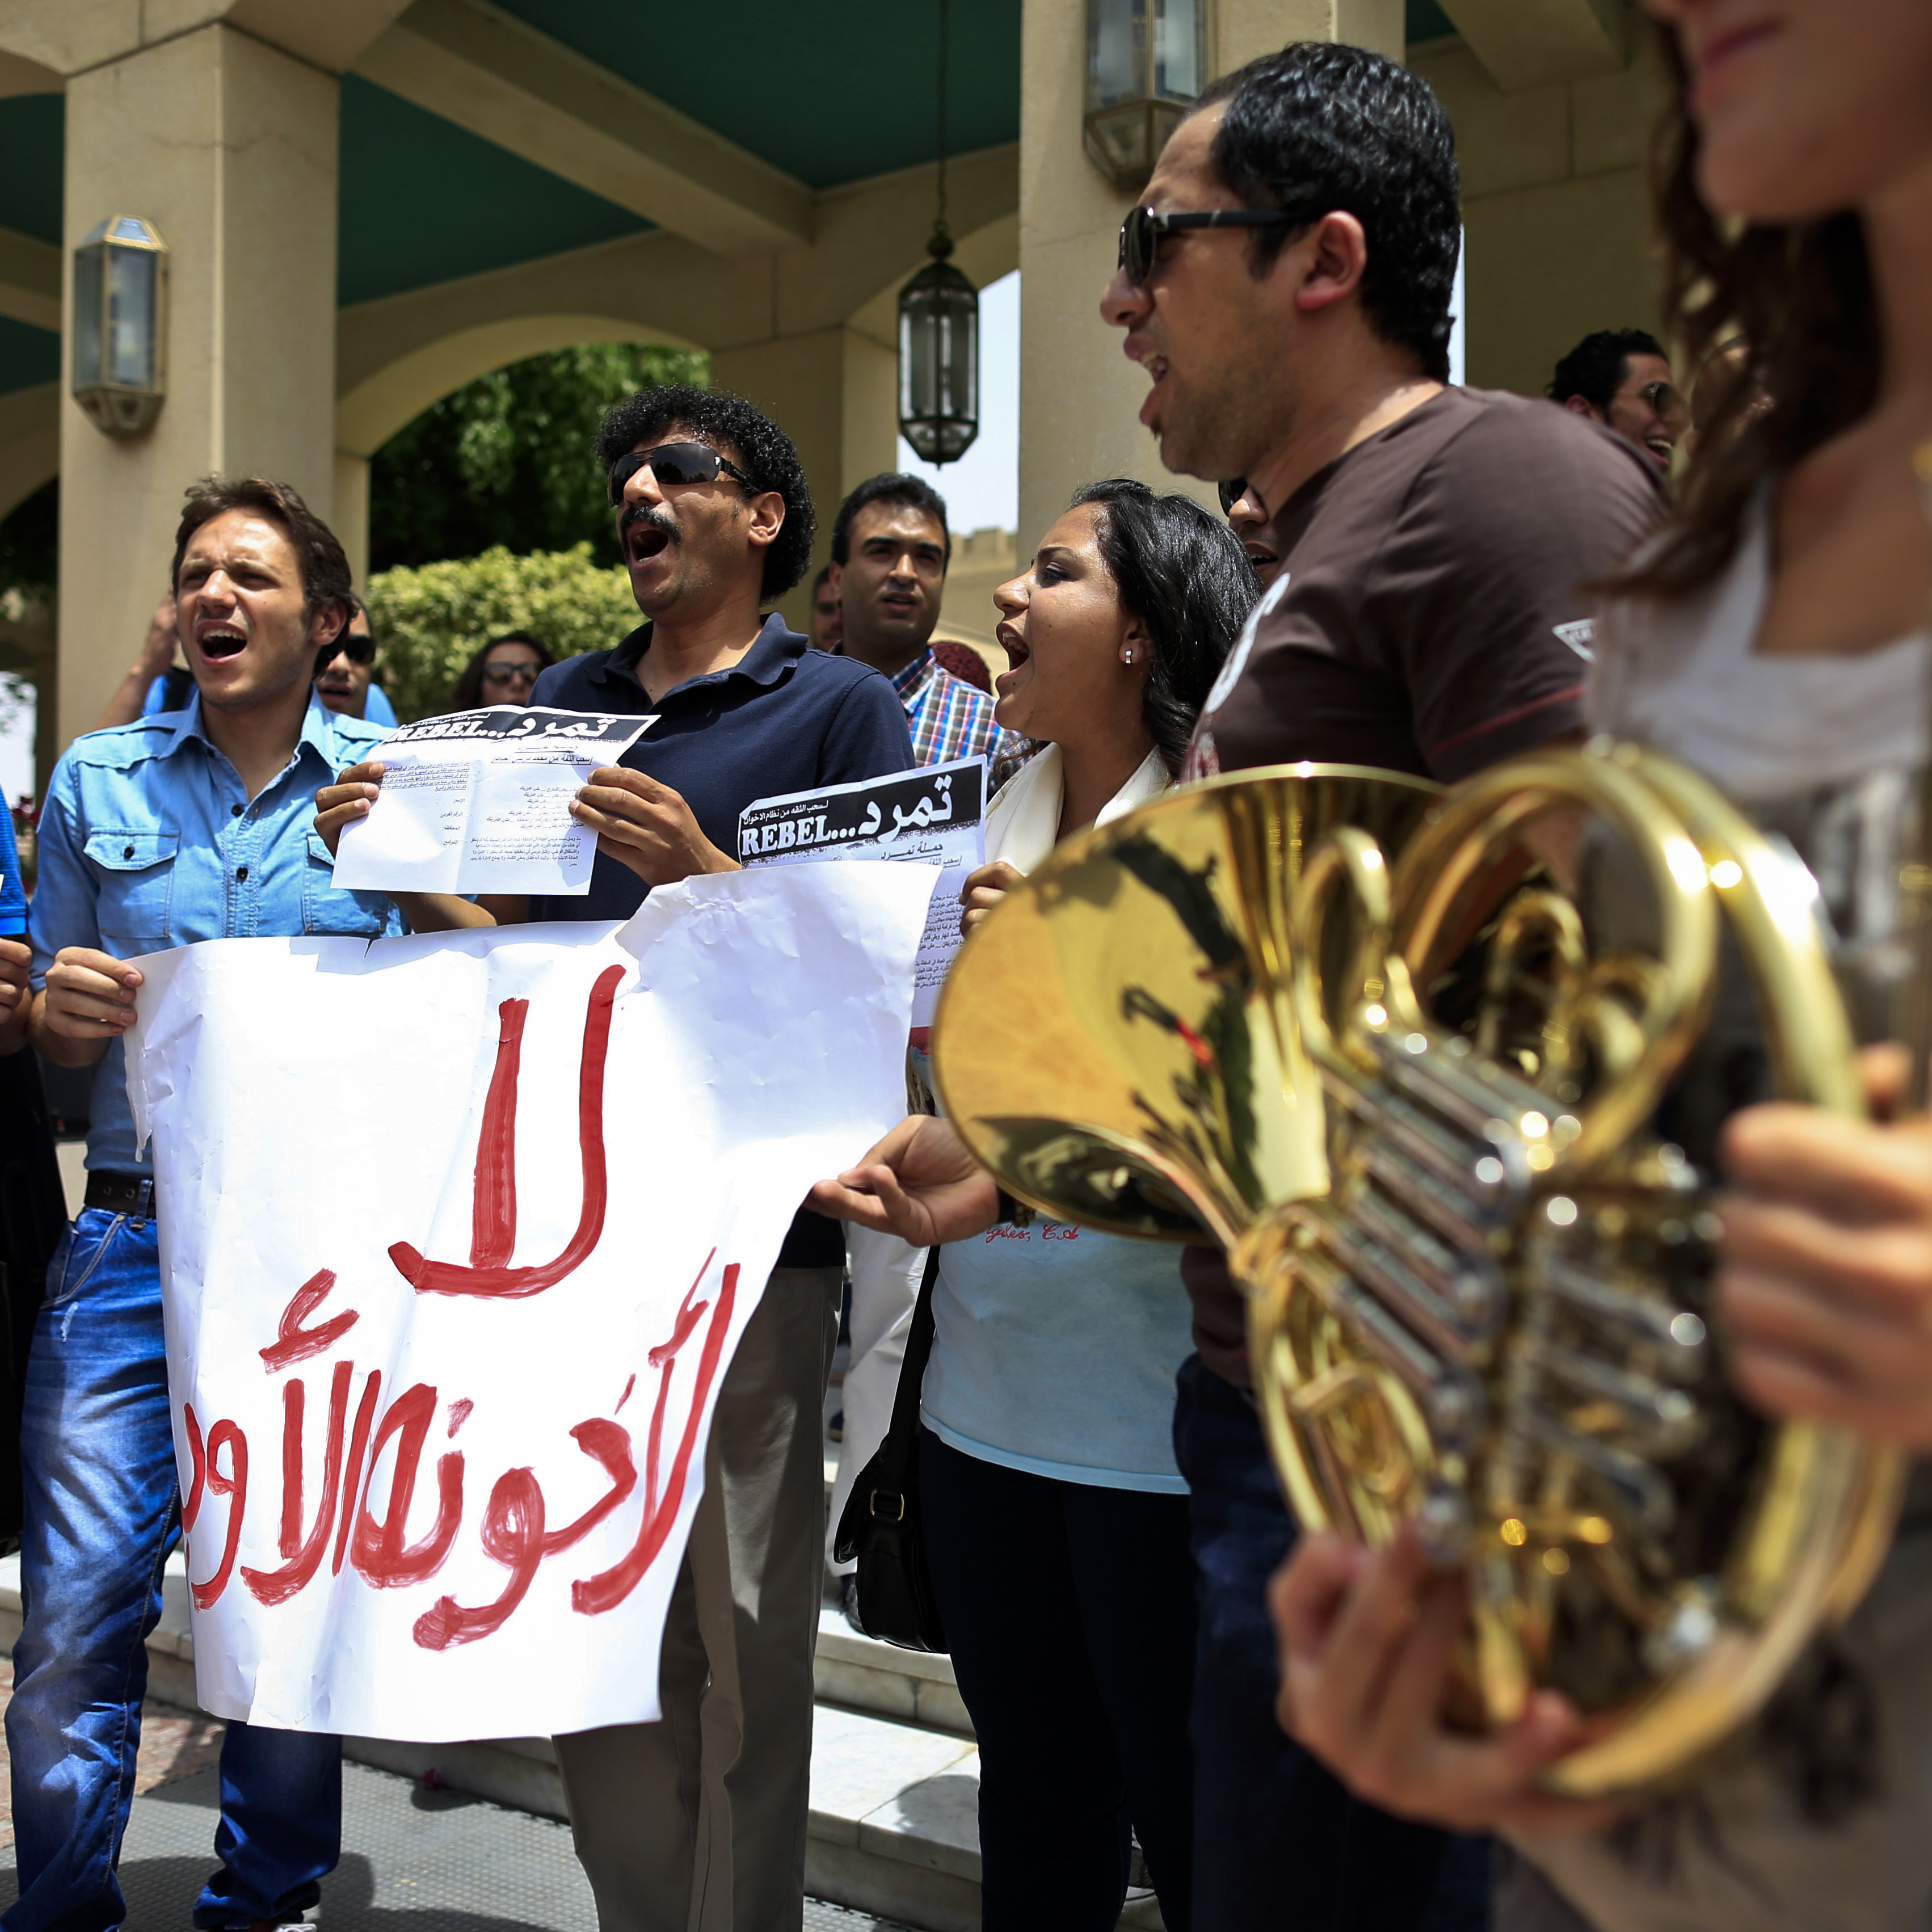 Egyptian employees and students chant slogans during a protest in support of Enas Abdel-Dayem, head of the Cairo Opera House, on May 29. The Cairo Opera House has become a new battleground between supporters and opponents of Egypt's Islamist president, clashing over the direction of the Middle East's oldest music institution.